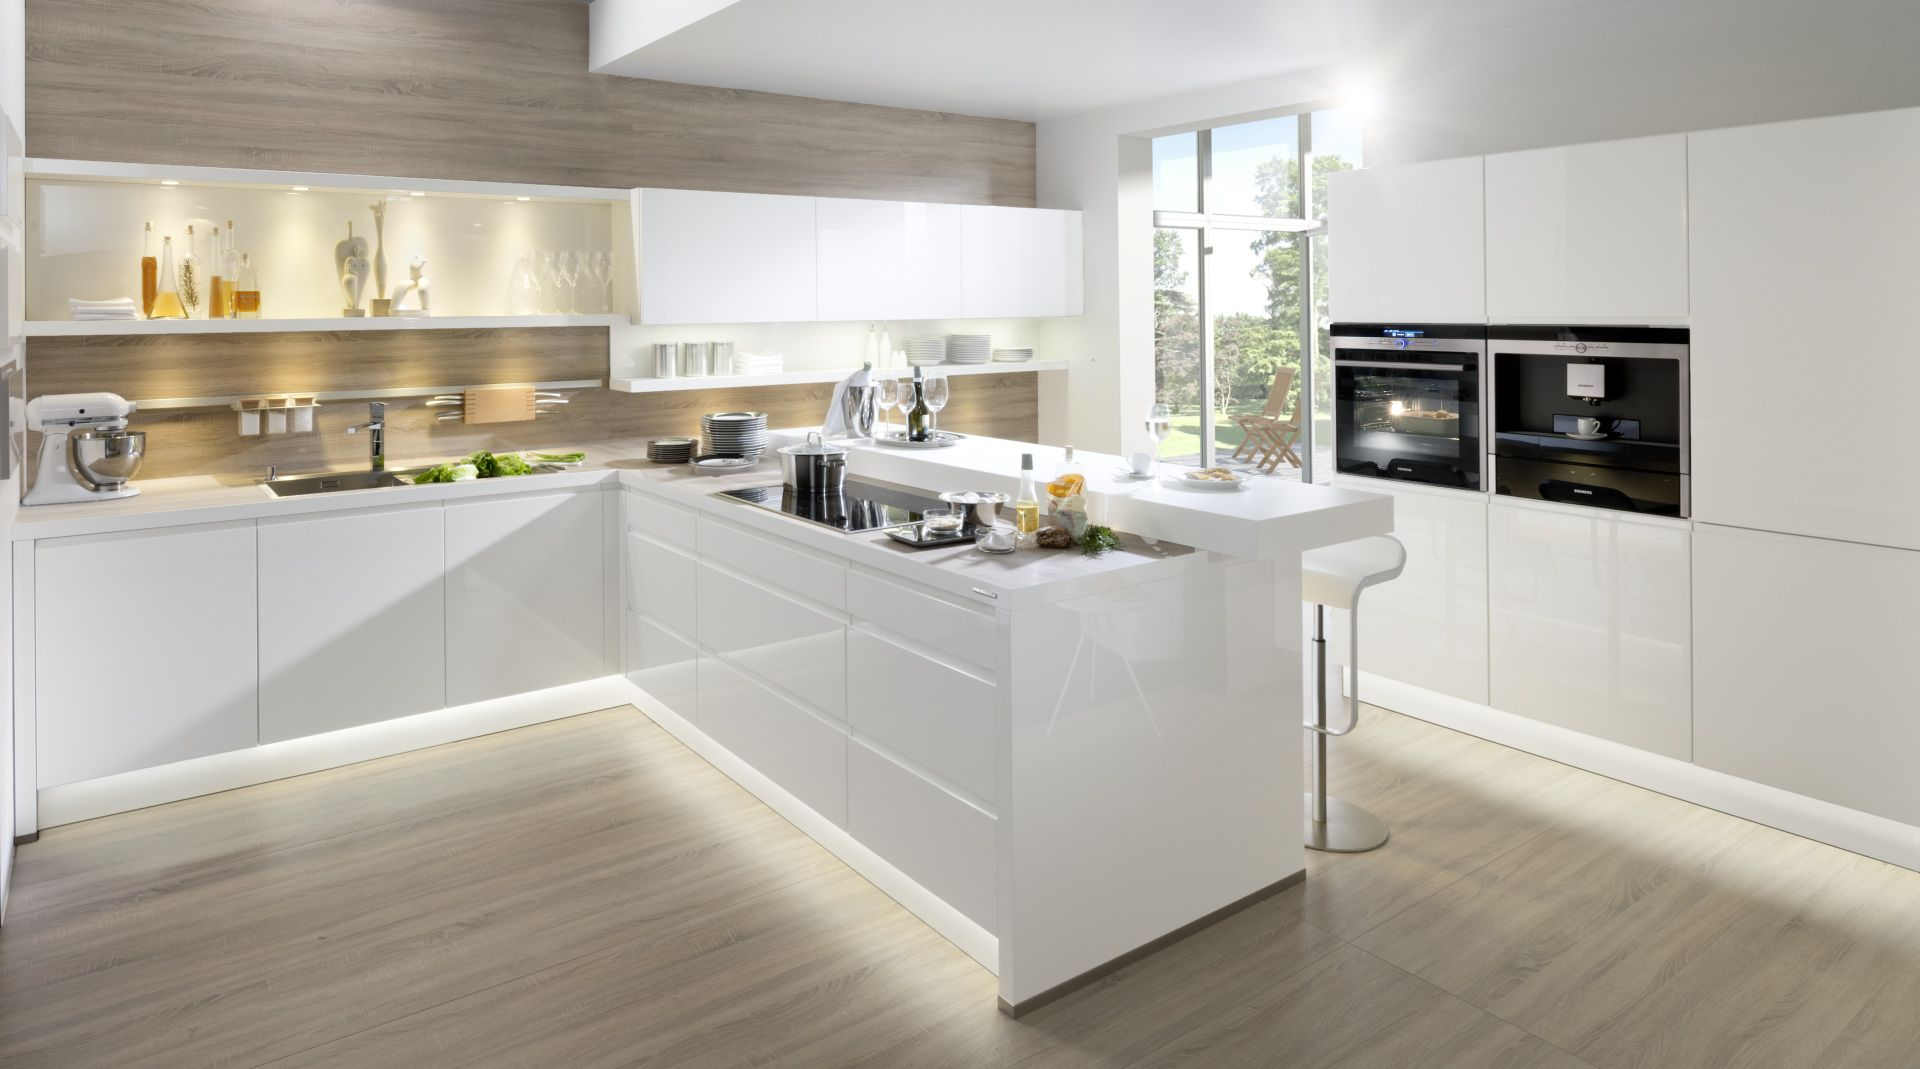 Nolte Kitchens on display at Clearly Interiors in Burnley ...